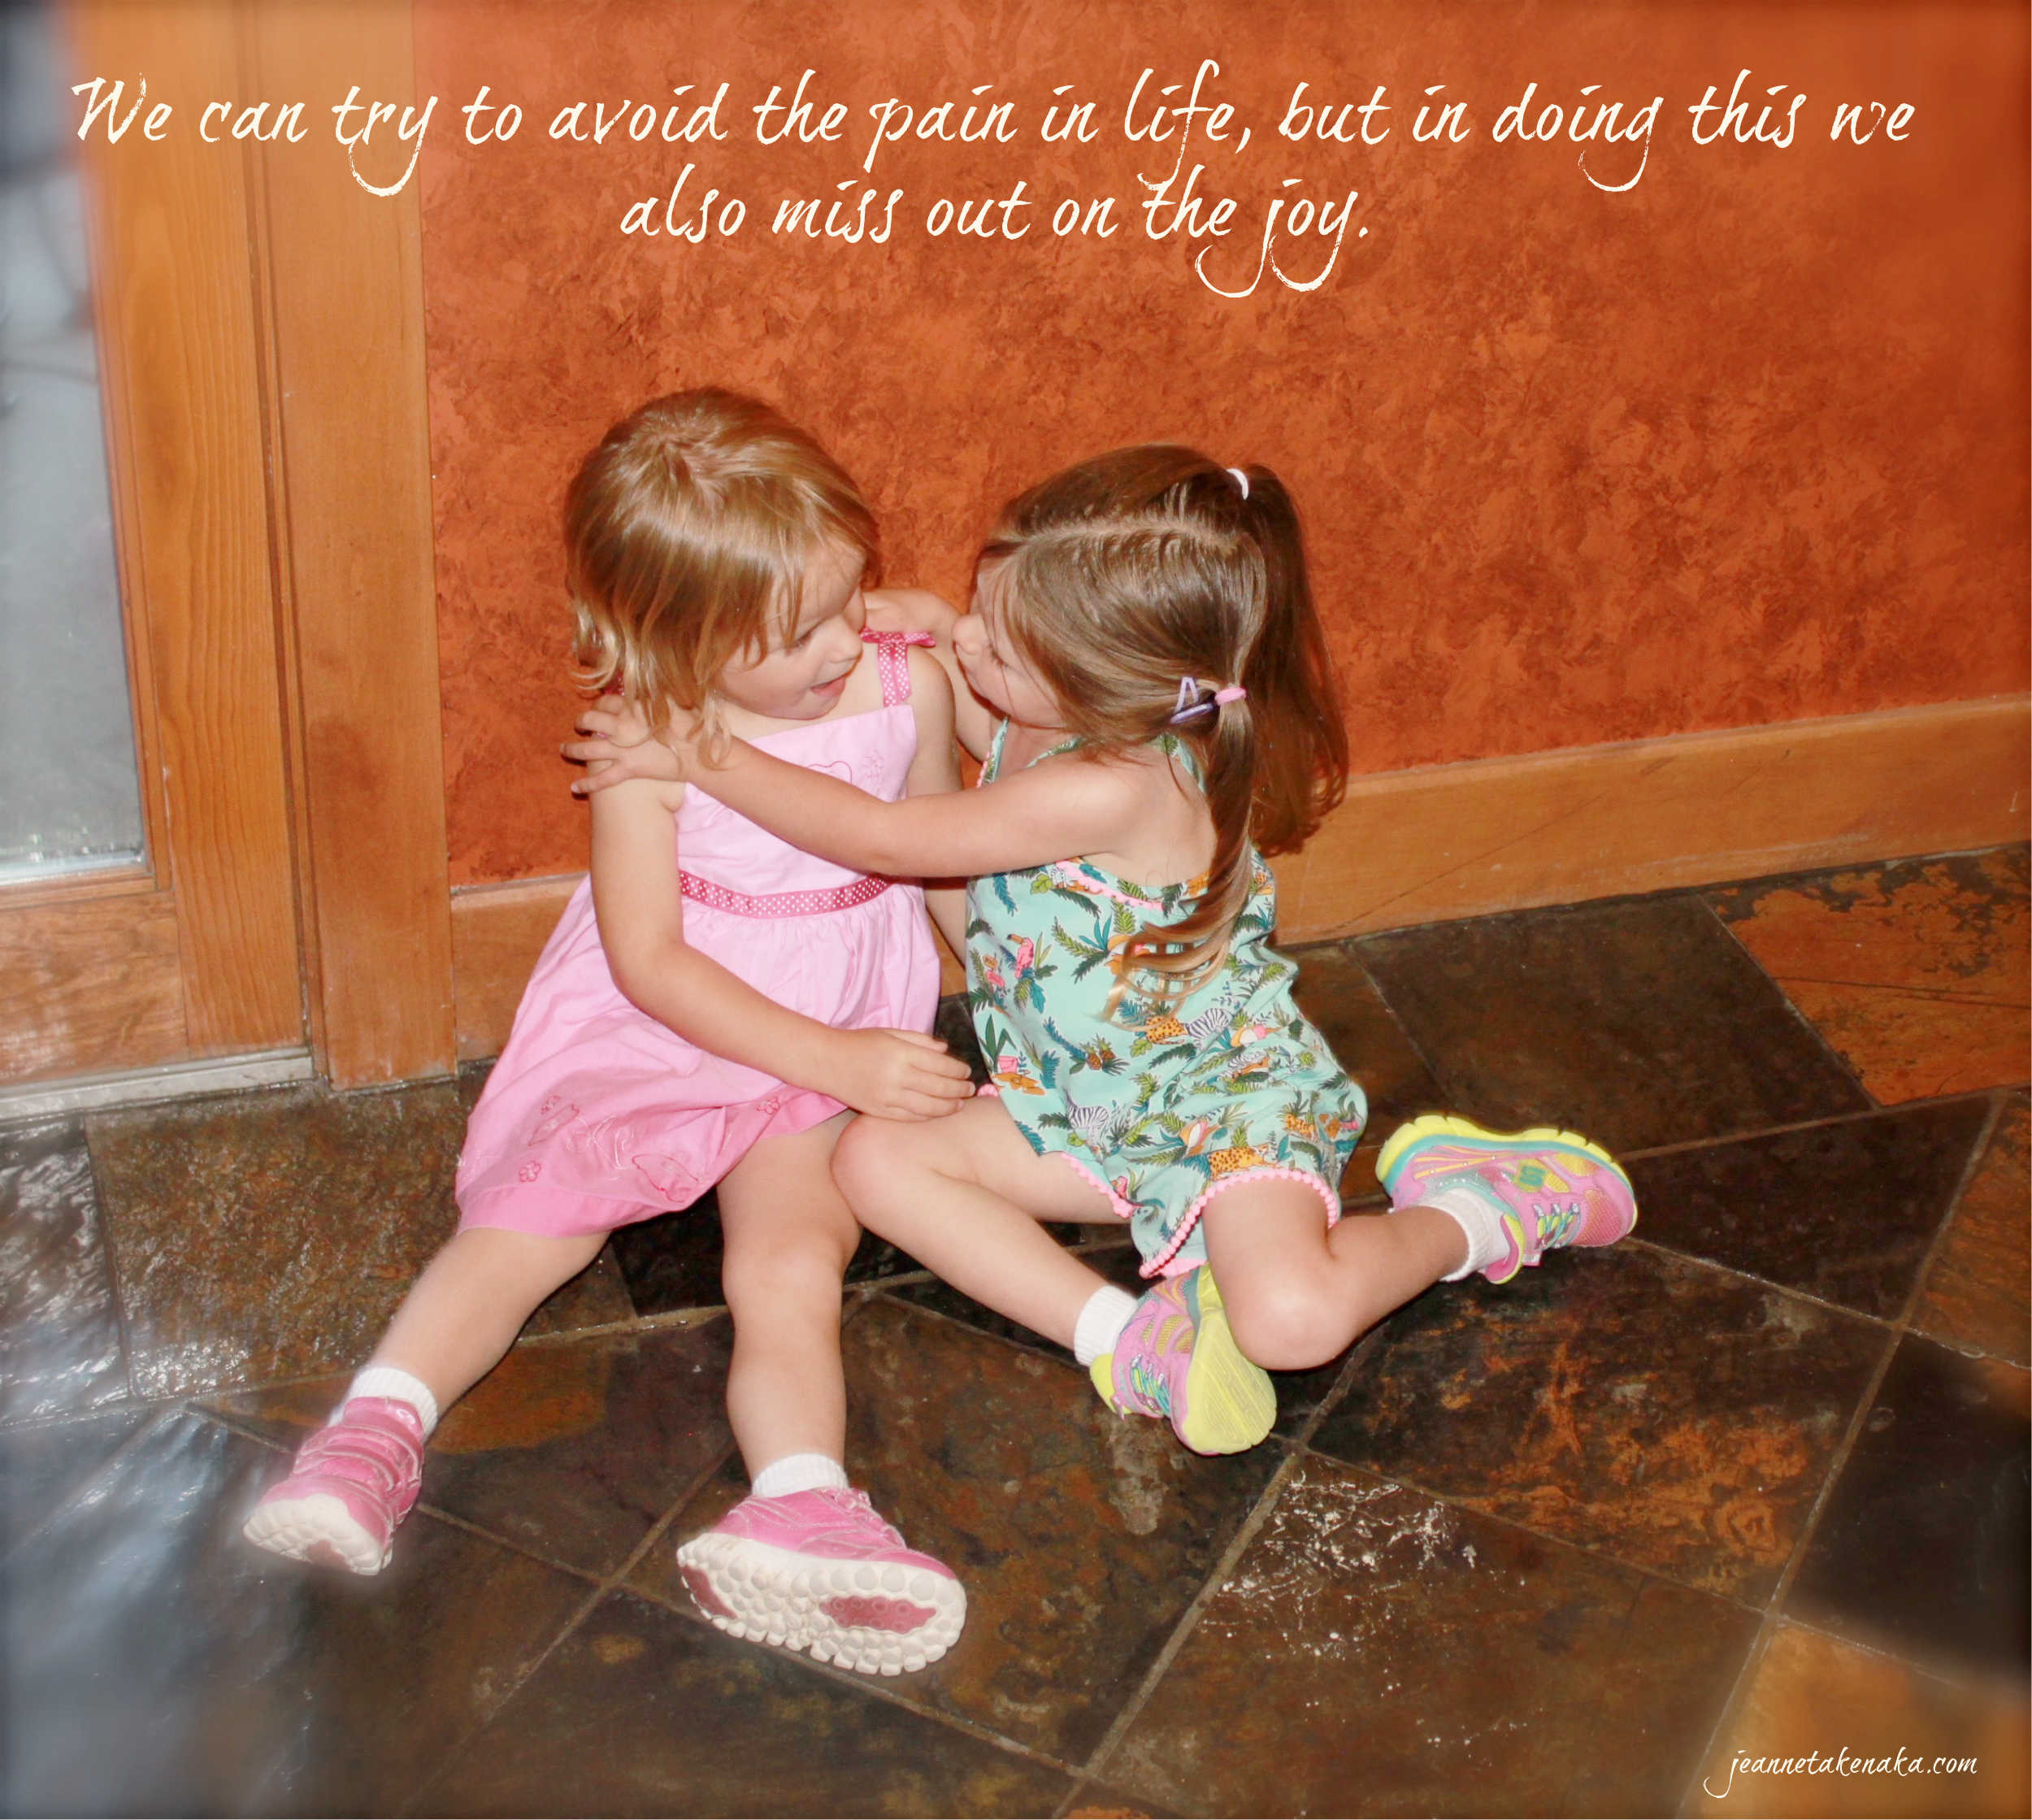 """Meme with the words, """"We can try to avoid the pain in life, but in doing this, we also miss out on the joy."""" on a backdrop of two small girls playing together"""